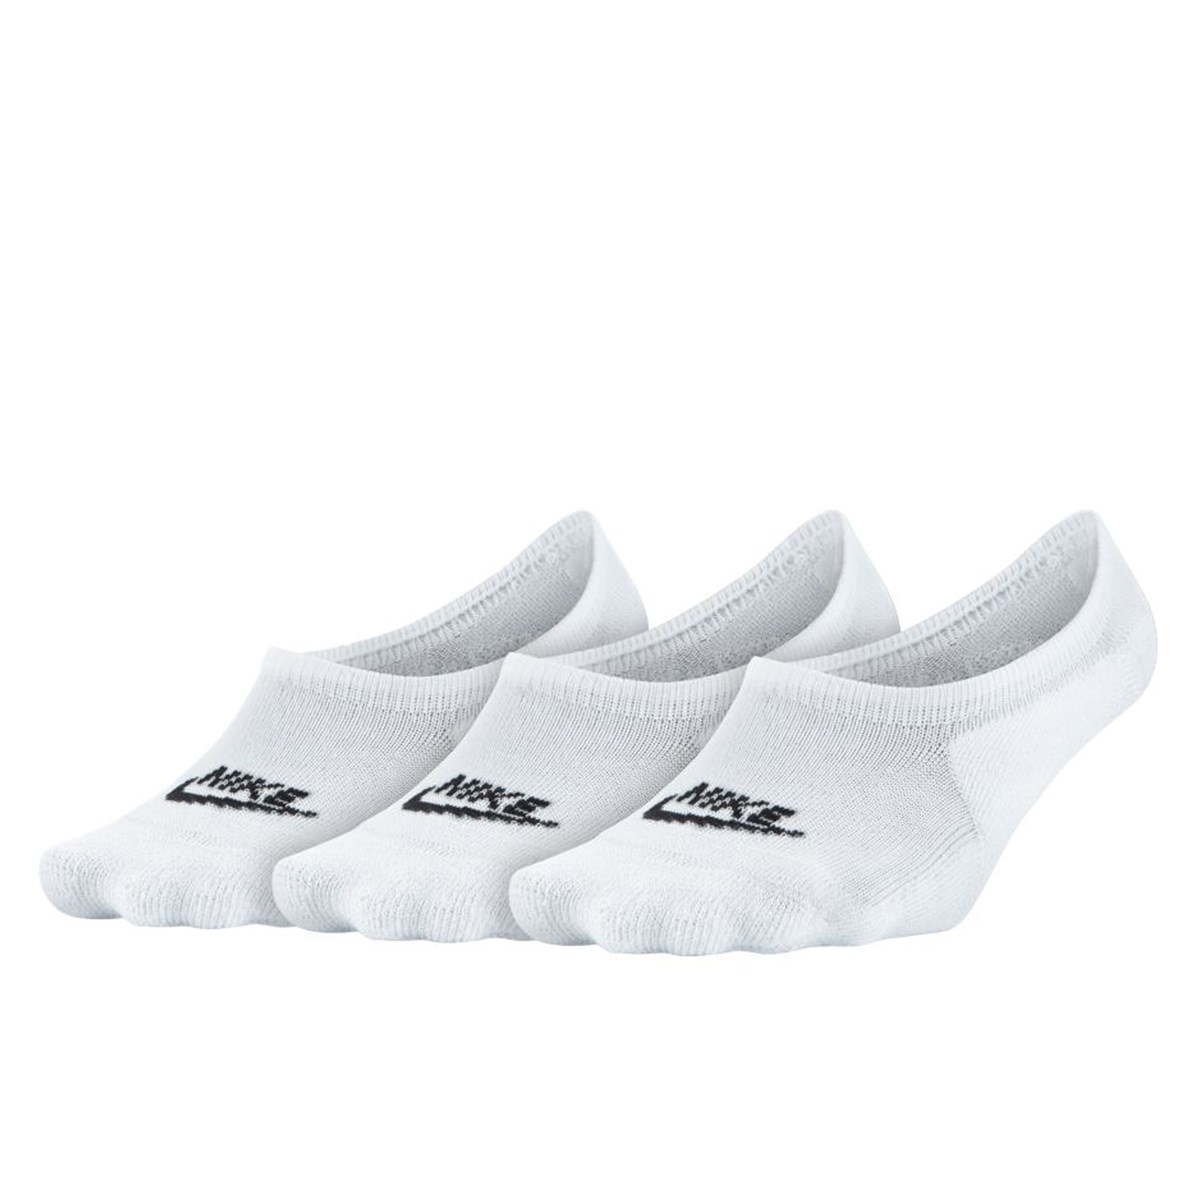 Women's No Show 3-Pack White Socks